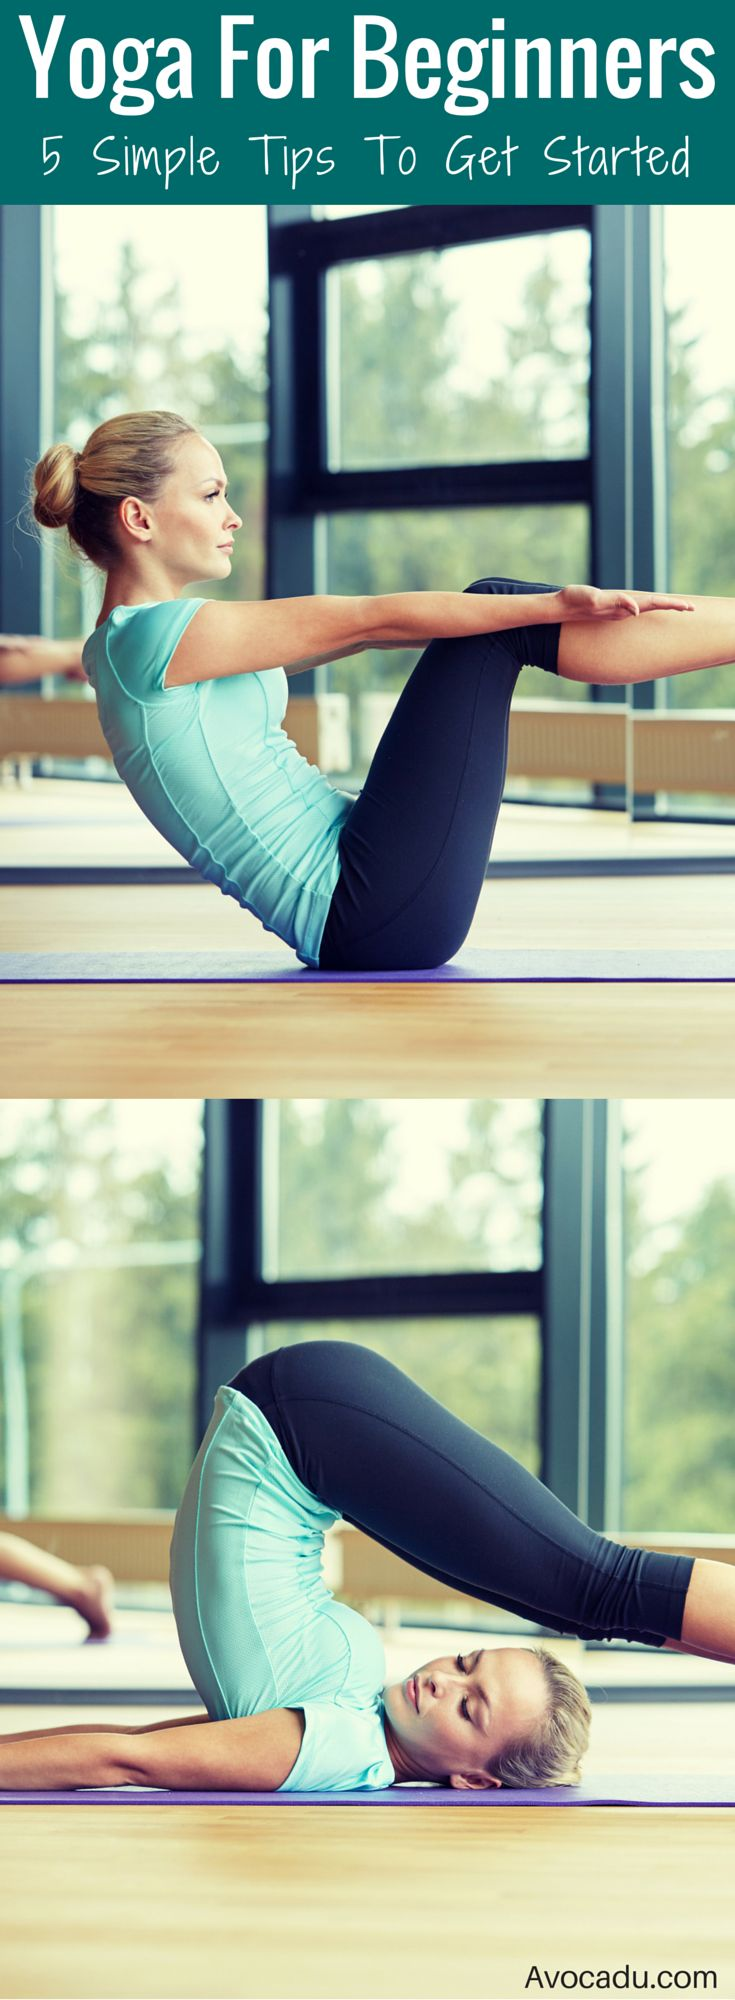 Best Yoga Poses & Workouts : Yoga for Beginners